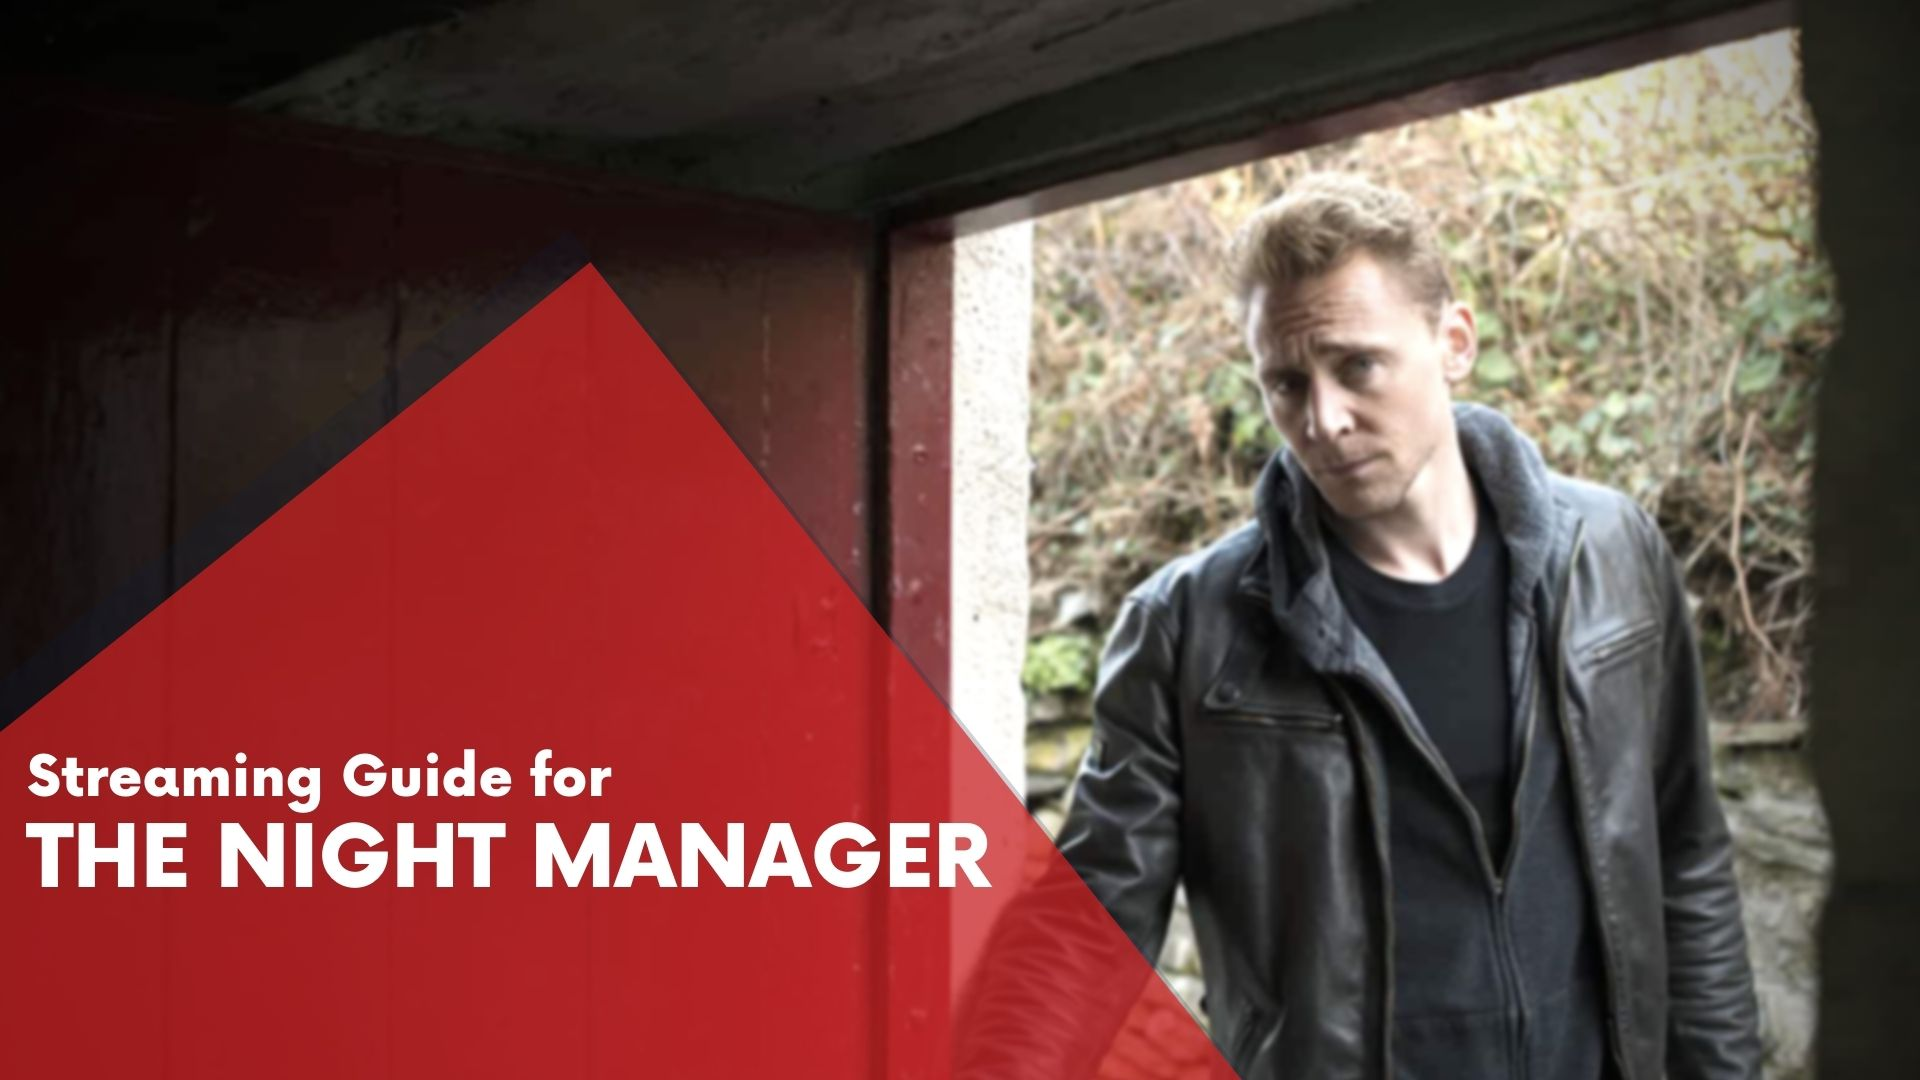 Answering if The Night Manager is available on Hulu